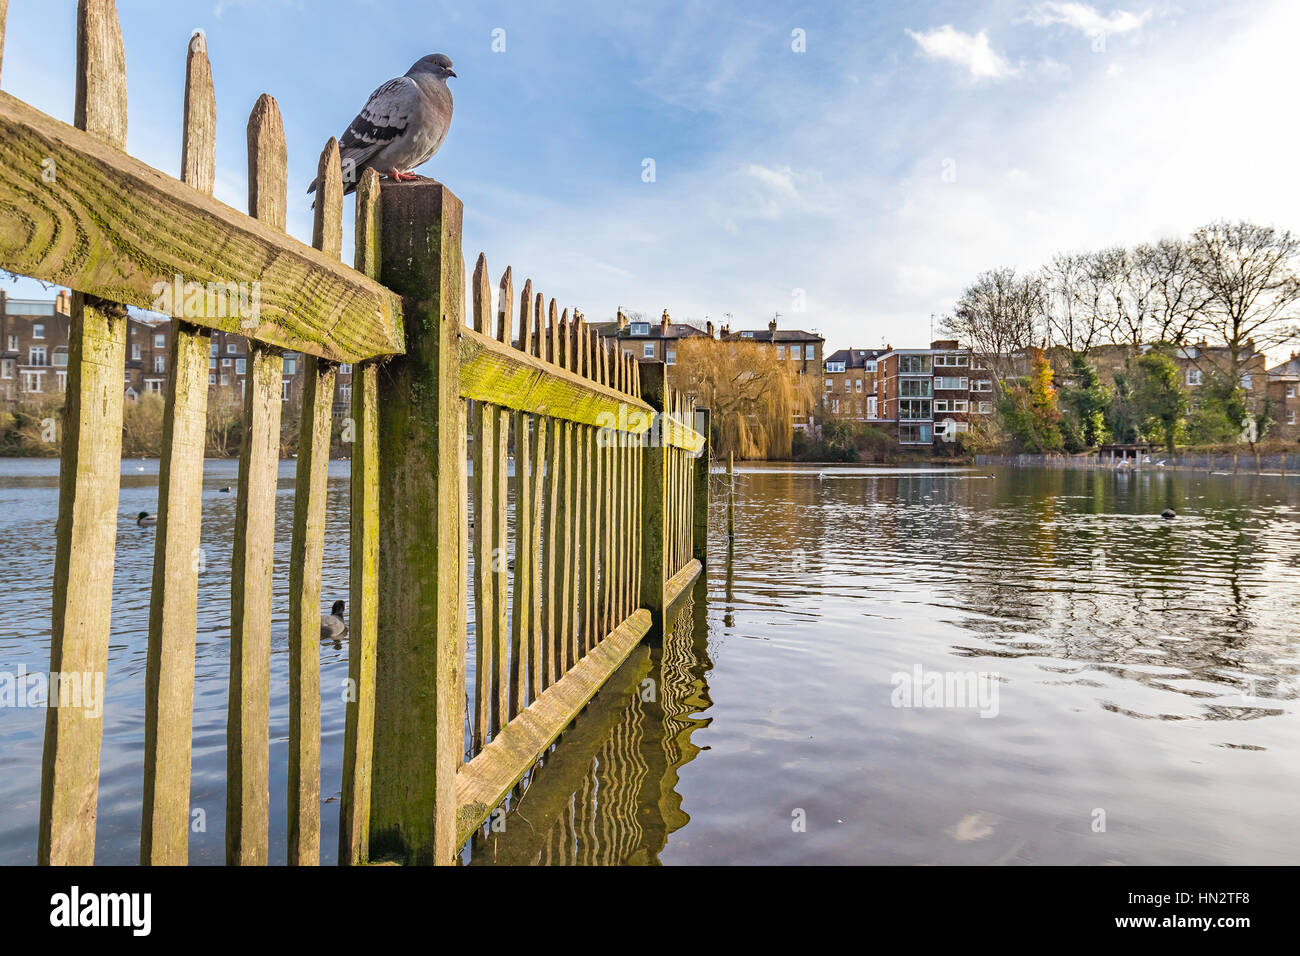 Old wooden fence full of moss inside of the lake in a british park with a pigeon sitting on top of it. - Stock Image